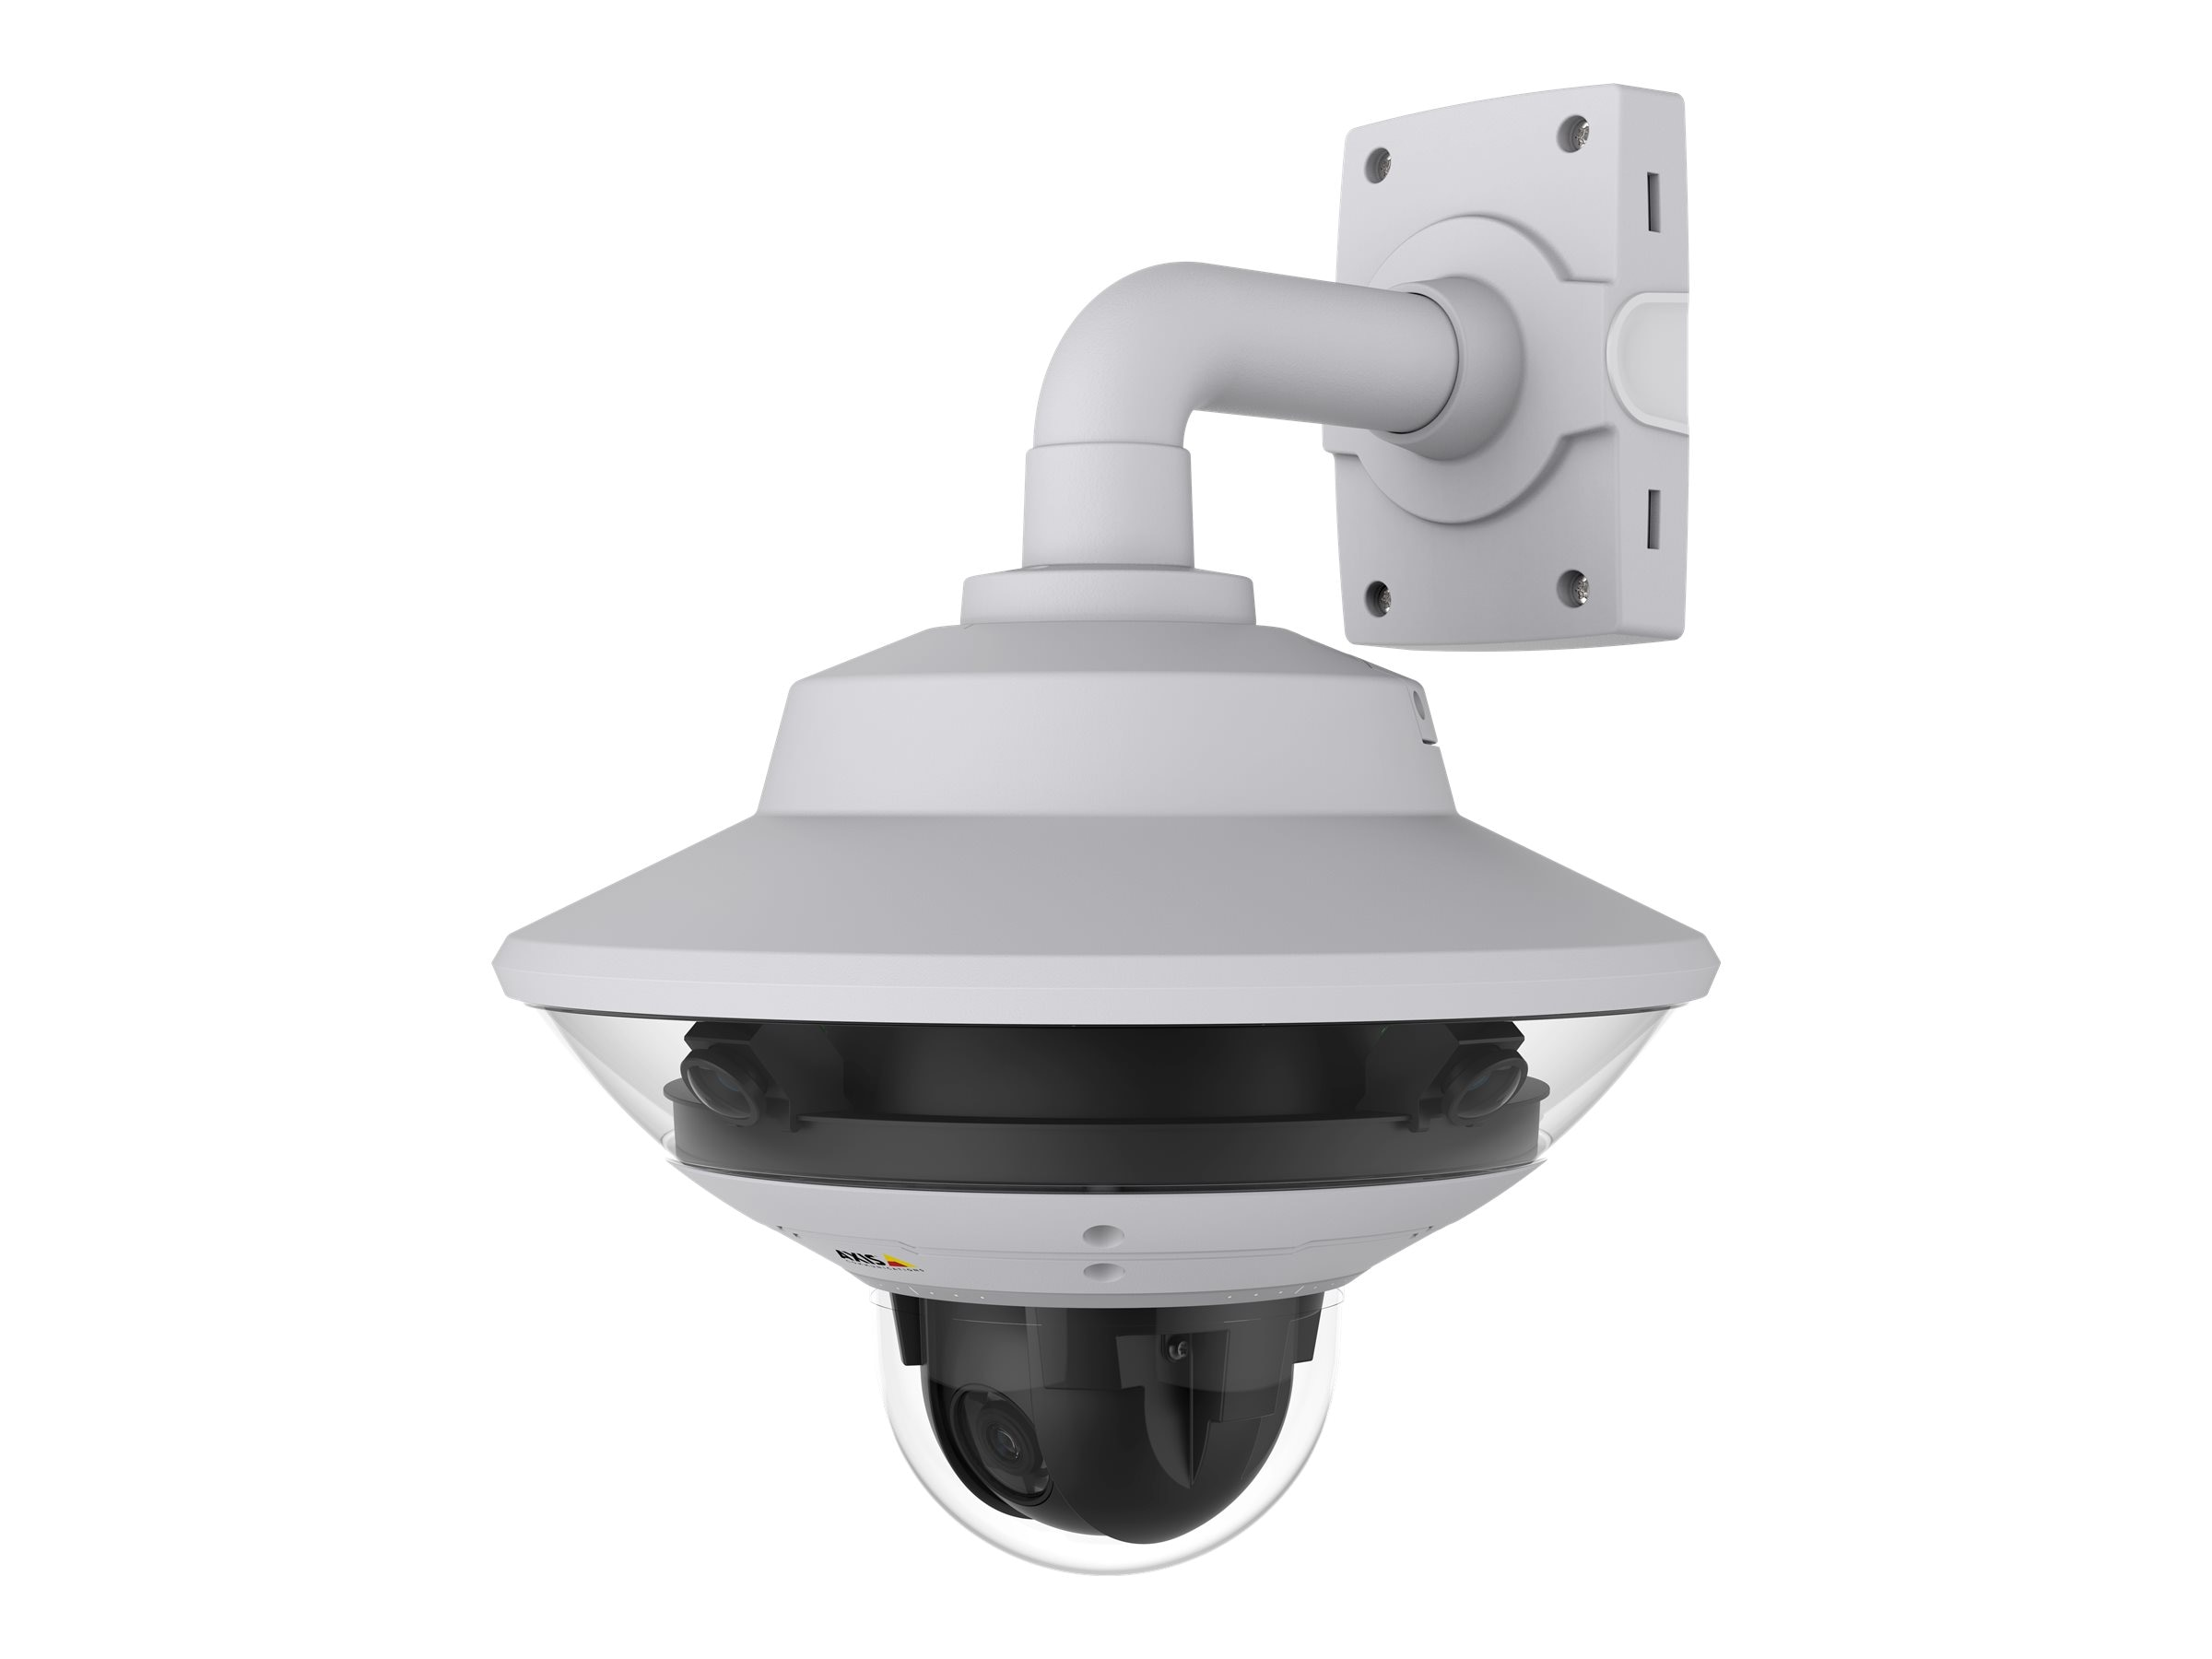 Axis Q6000-E 360 Degree PTZ Network Camera, 0636-001, 18421022, Cameras - Security